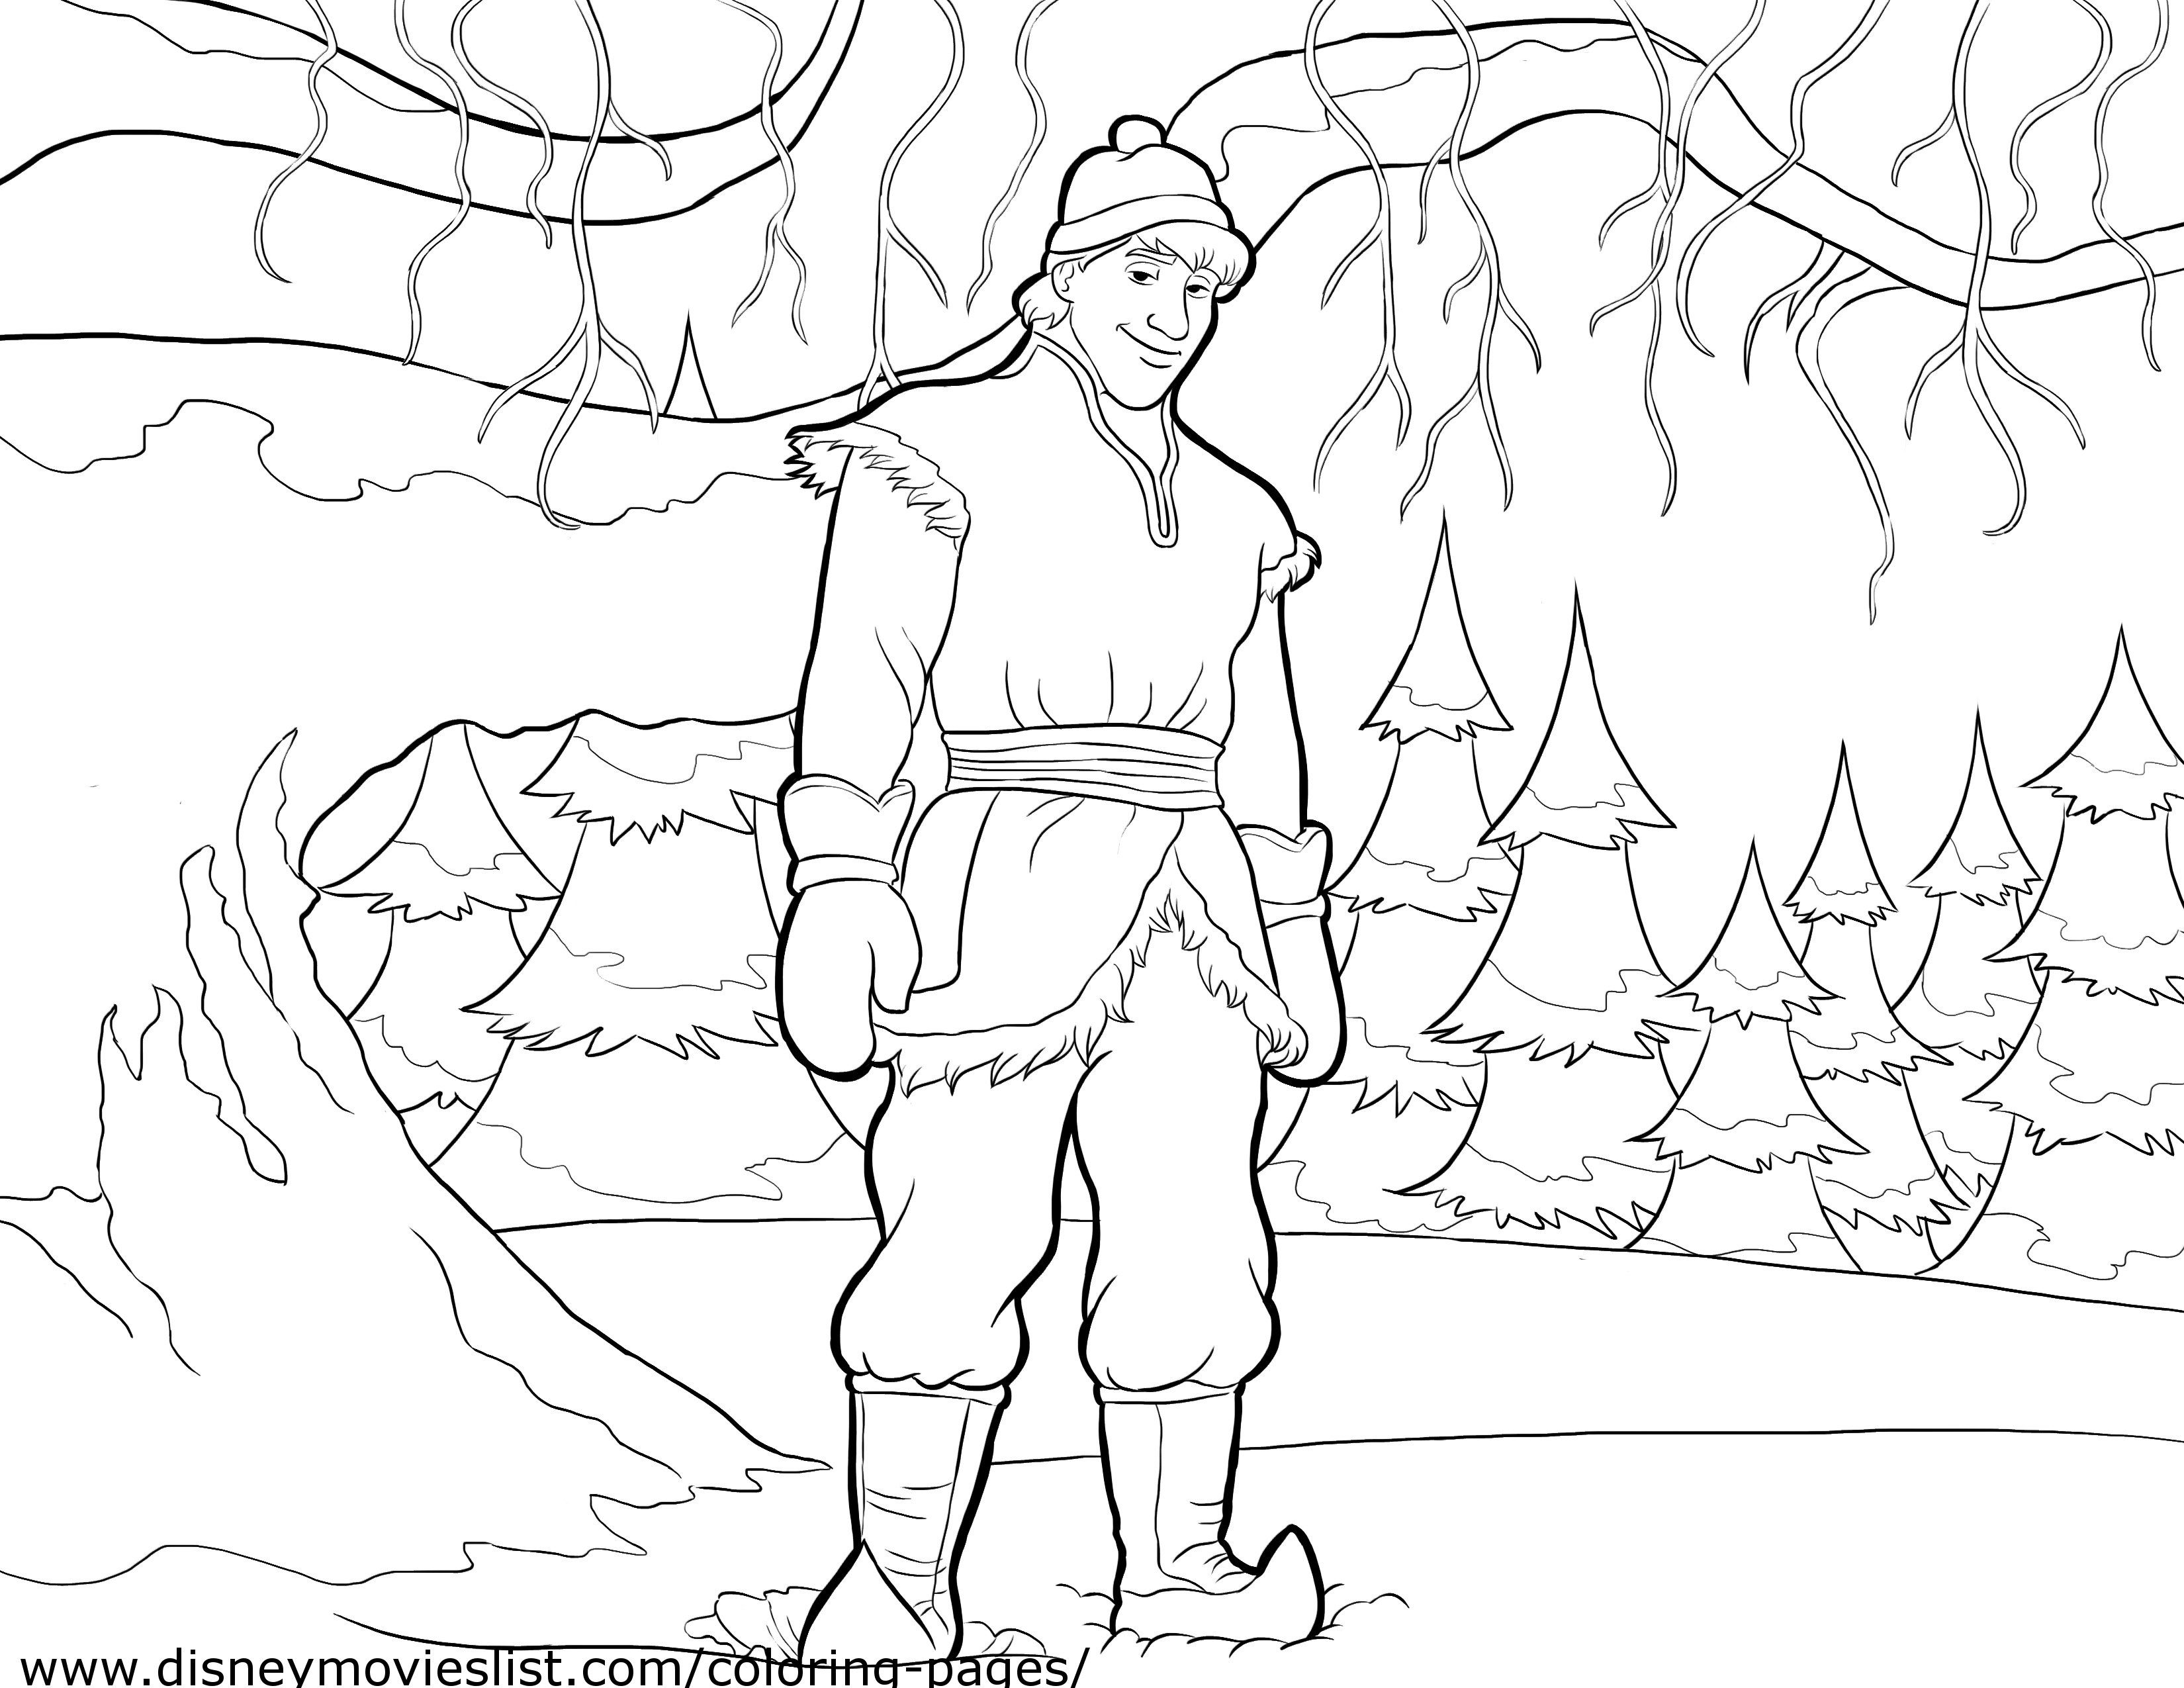 christopher frozen coloring pages - photo#2